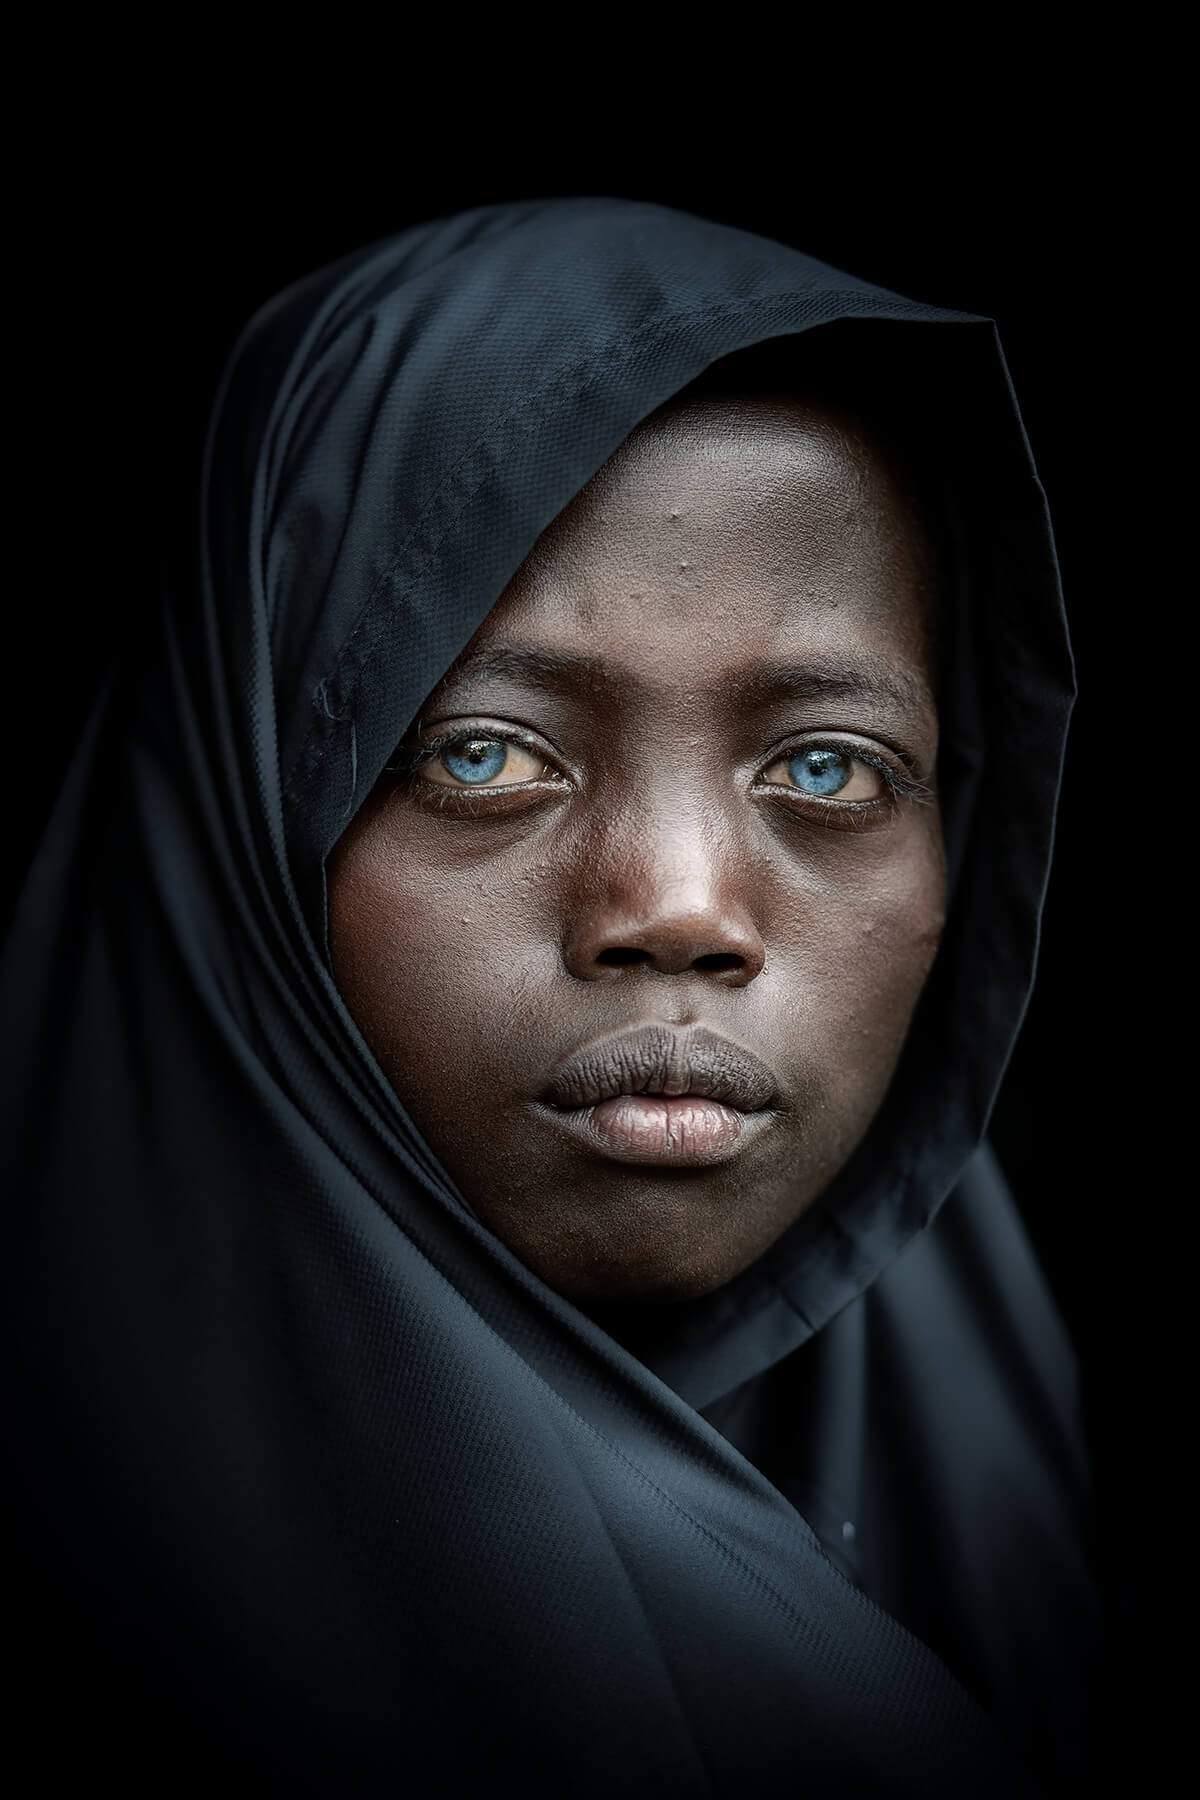 All About Photo Announces the Winners of the AAP MAGAZINE #10 - Portrait Contest